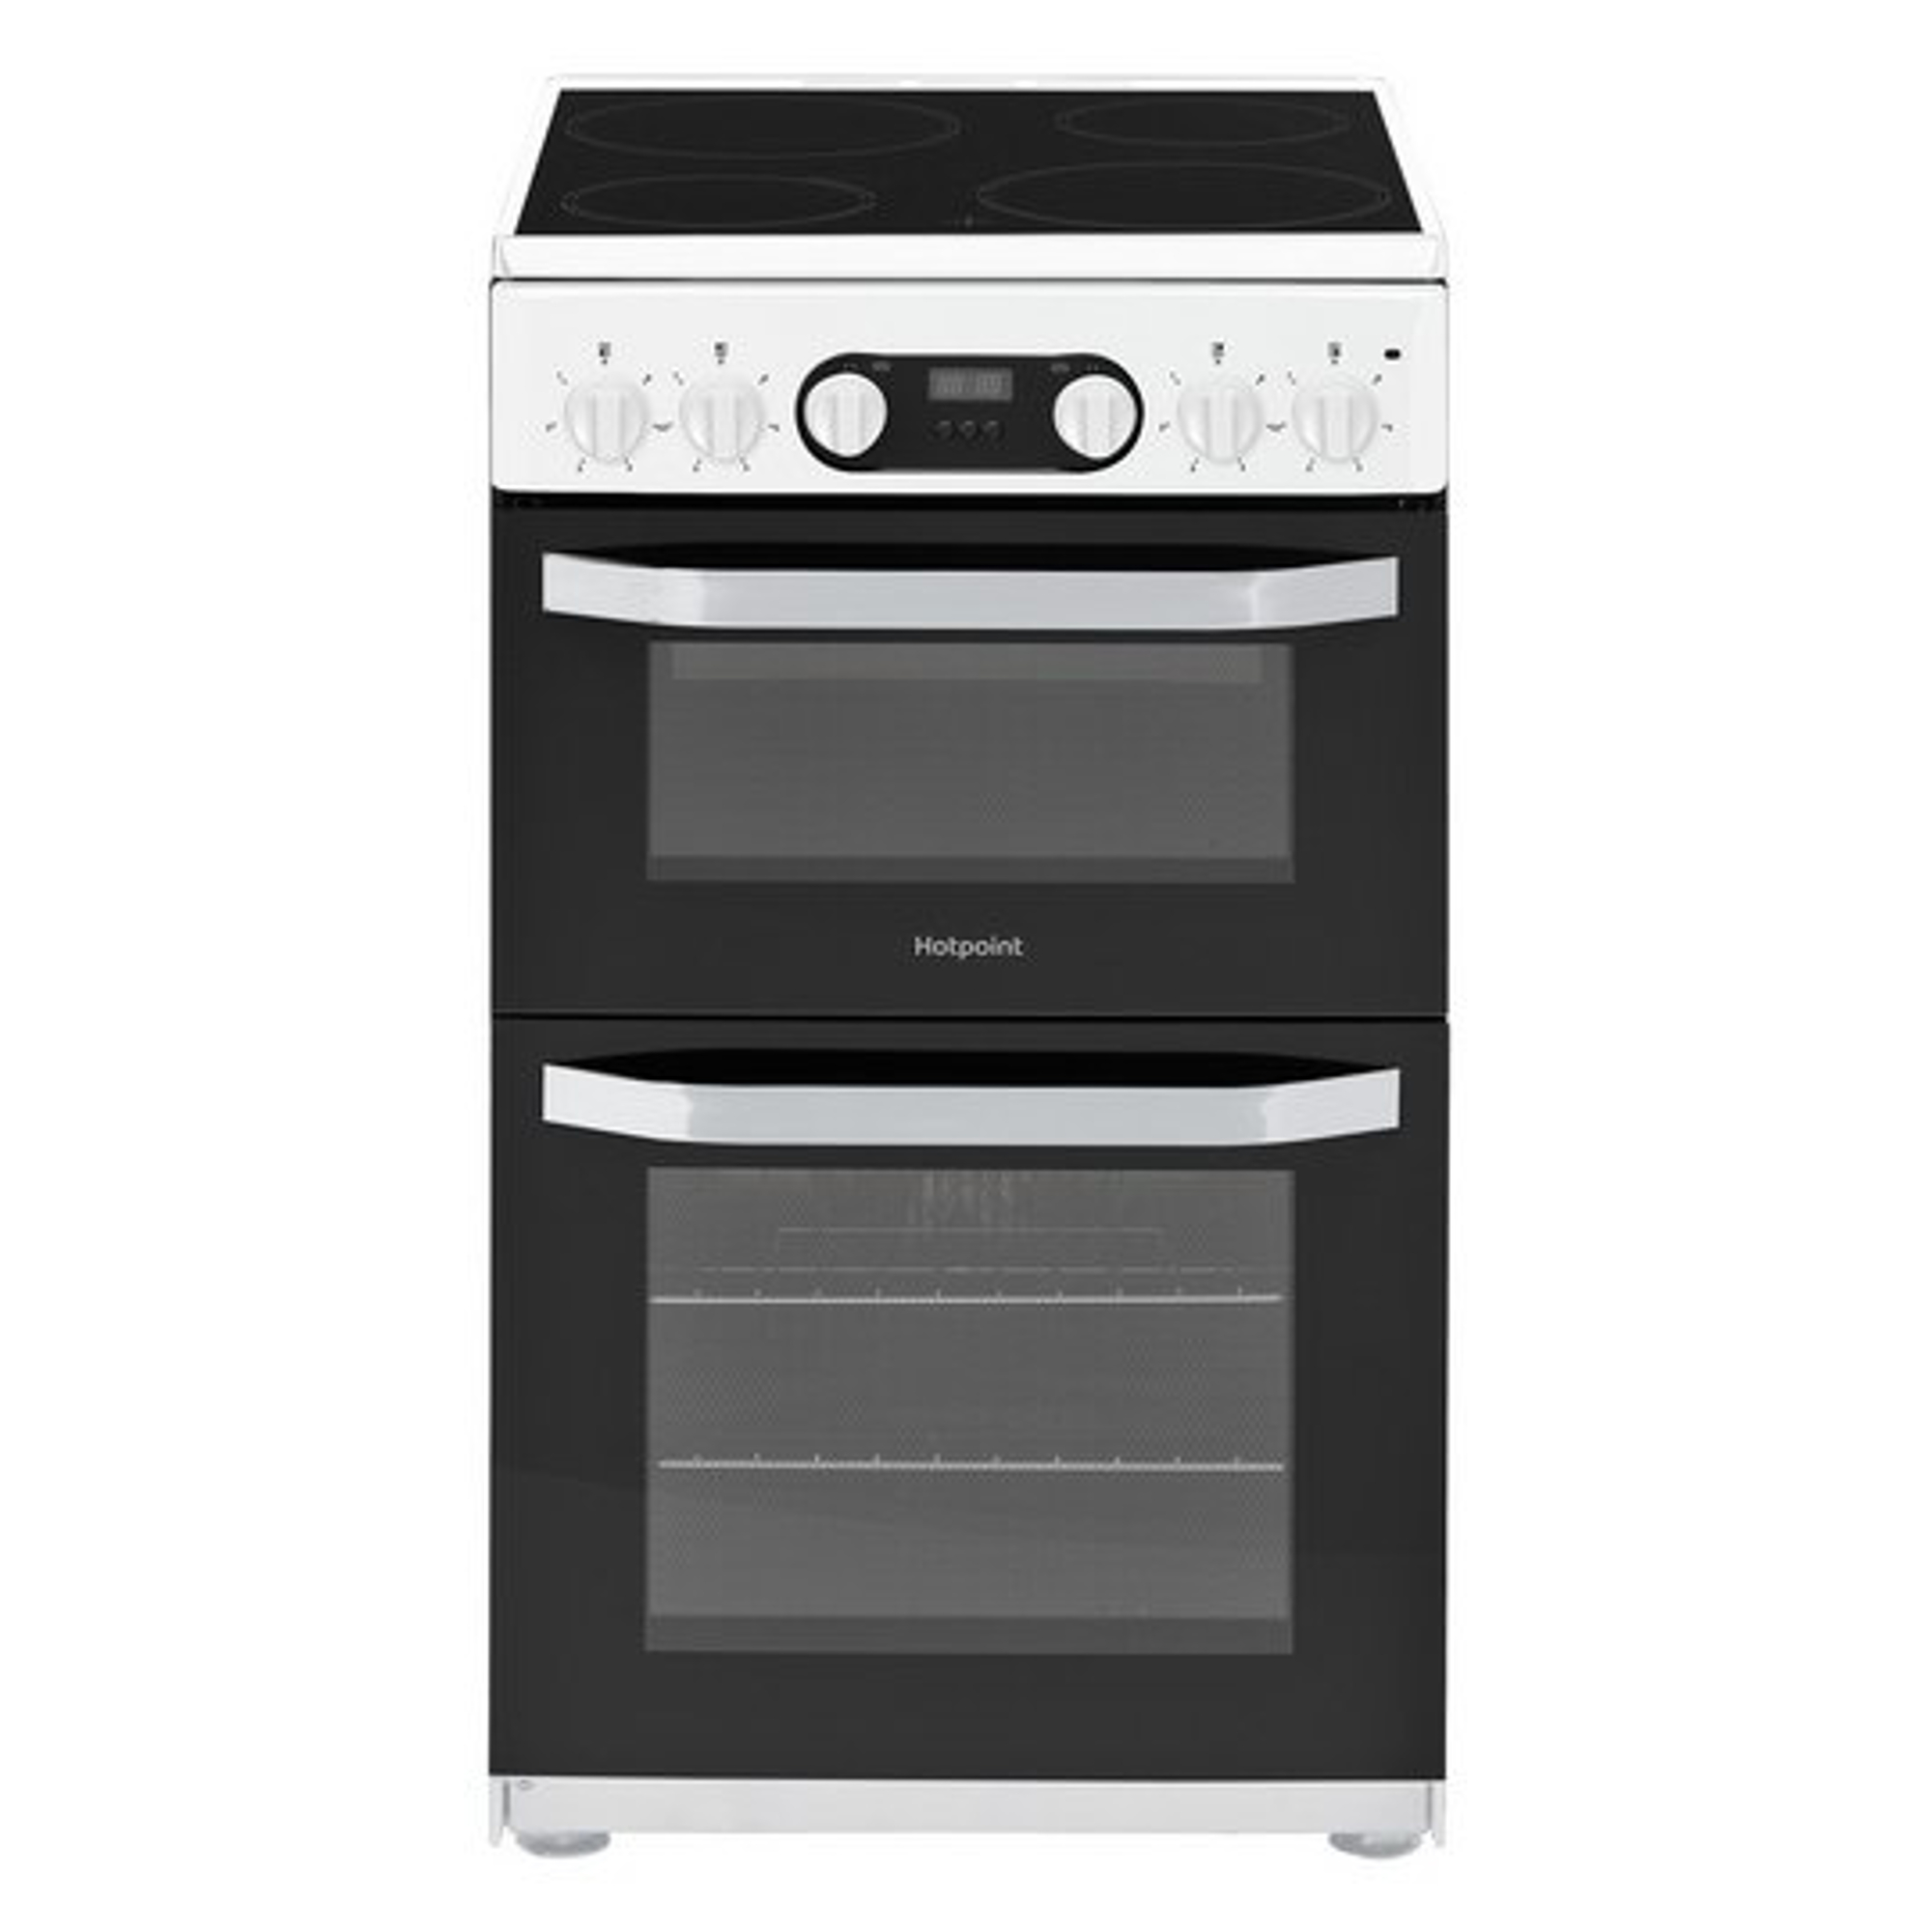 Hotpoint Hd5v93ccwuk Electric Cooker With Ceramic Hob Hughes